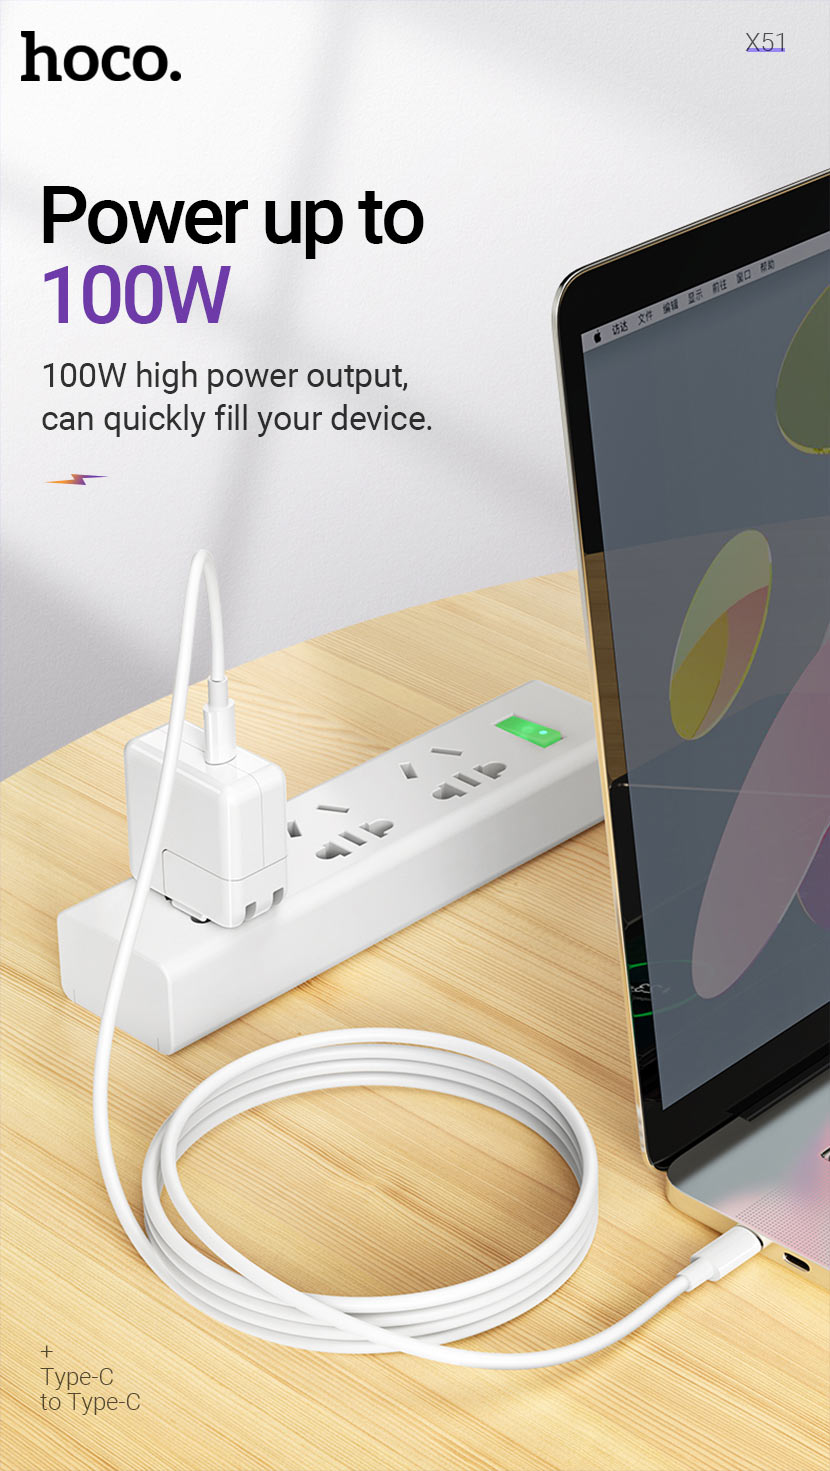 hoco news x51 high power 100w charging data cable output en